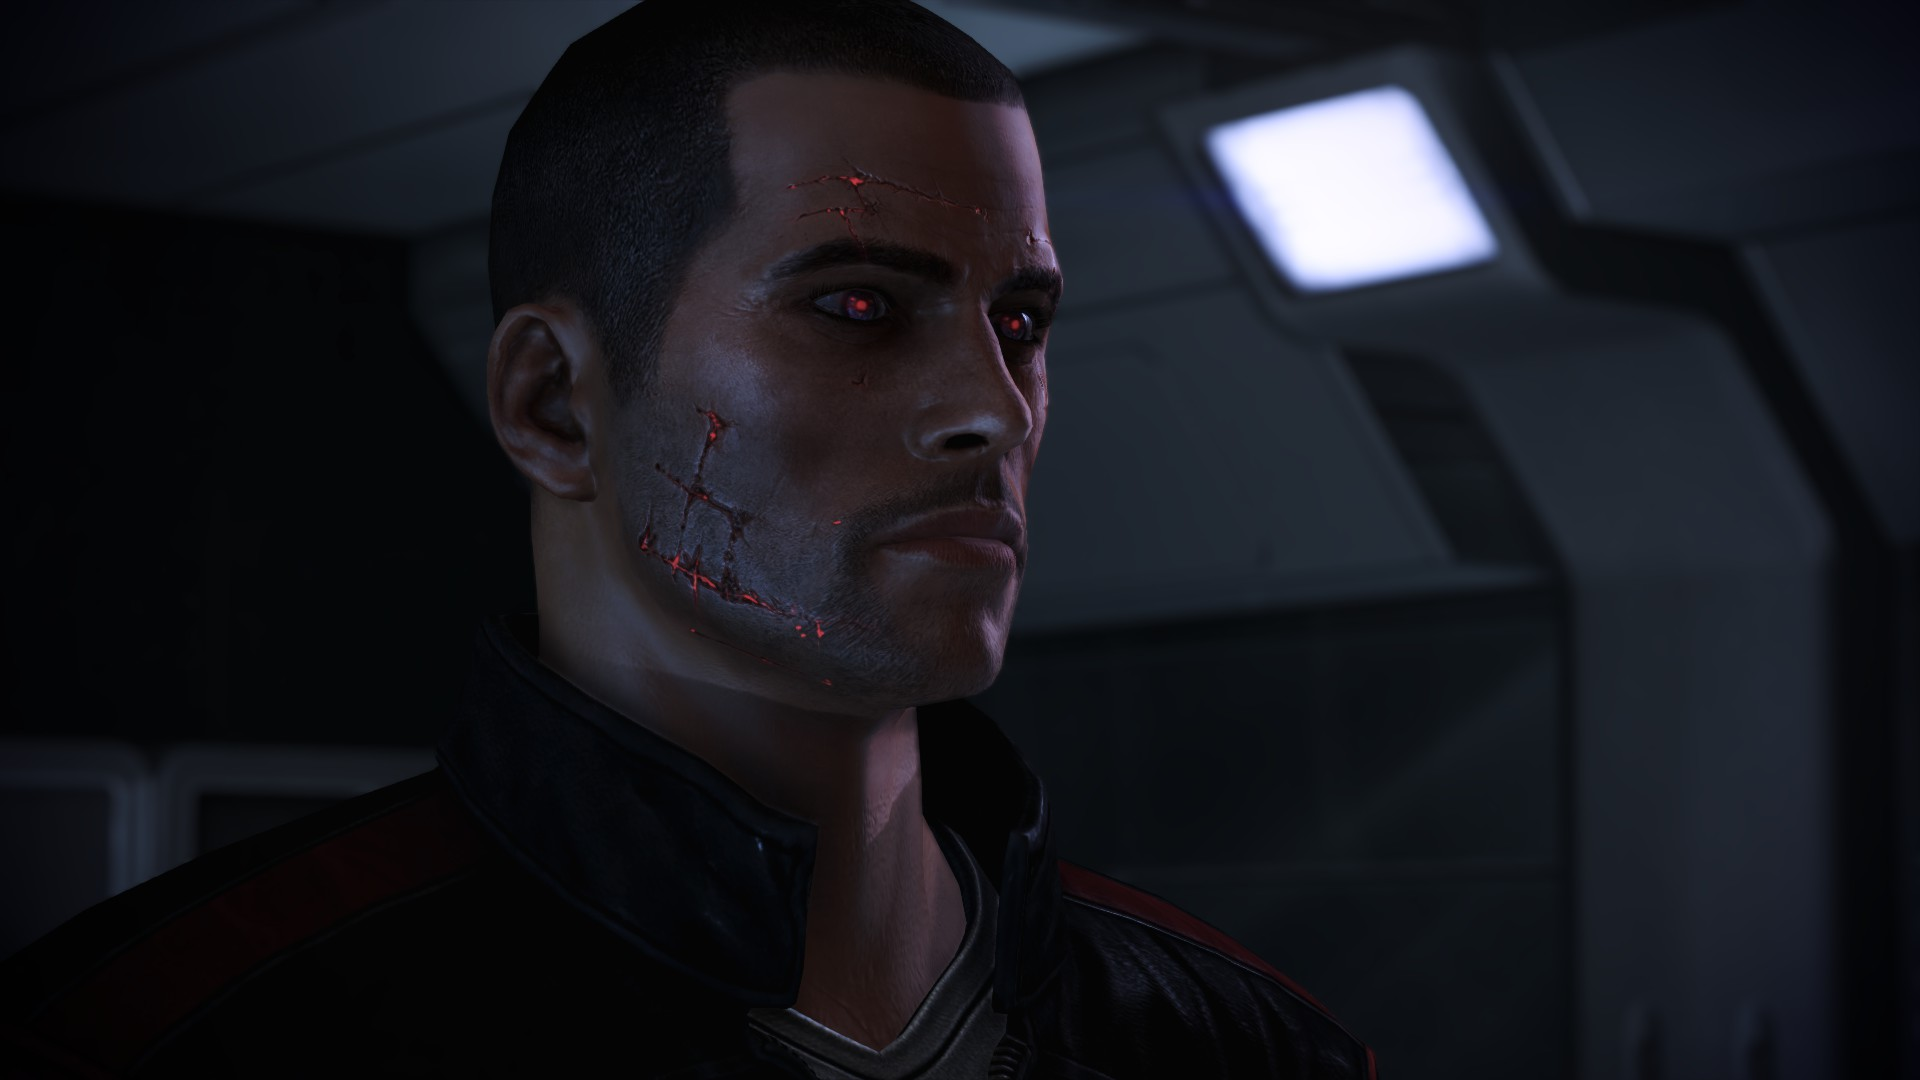 Mass Effect™ Legendary Edition - Game Information to Modding and Configuration - Let's make Mass Effect: Legendary Edition great - 51FA841